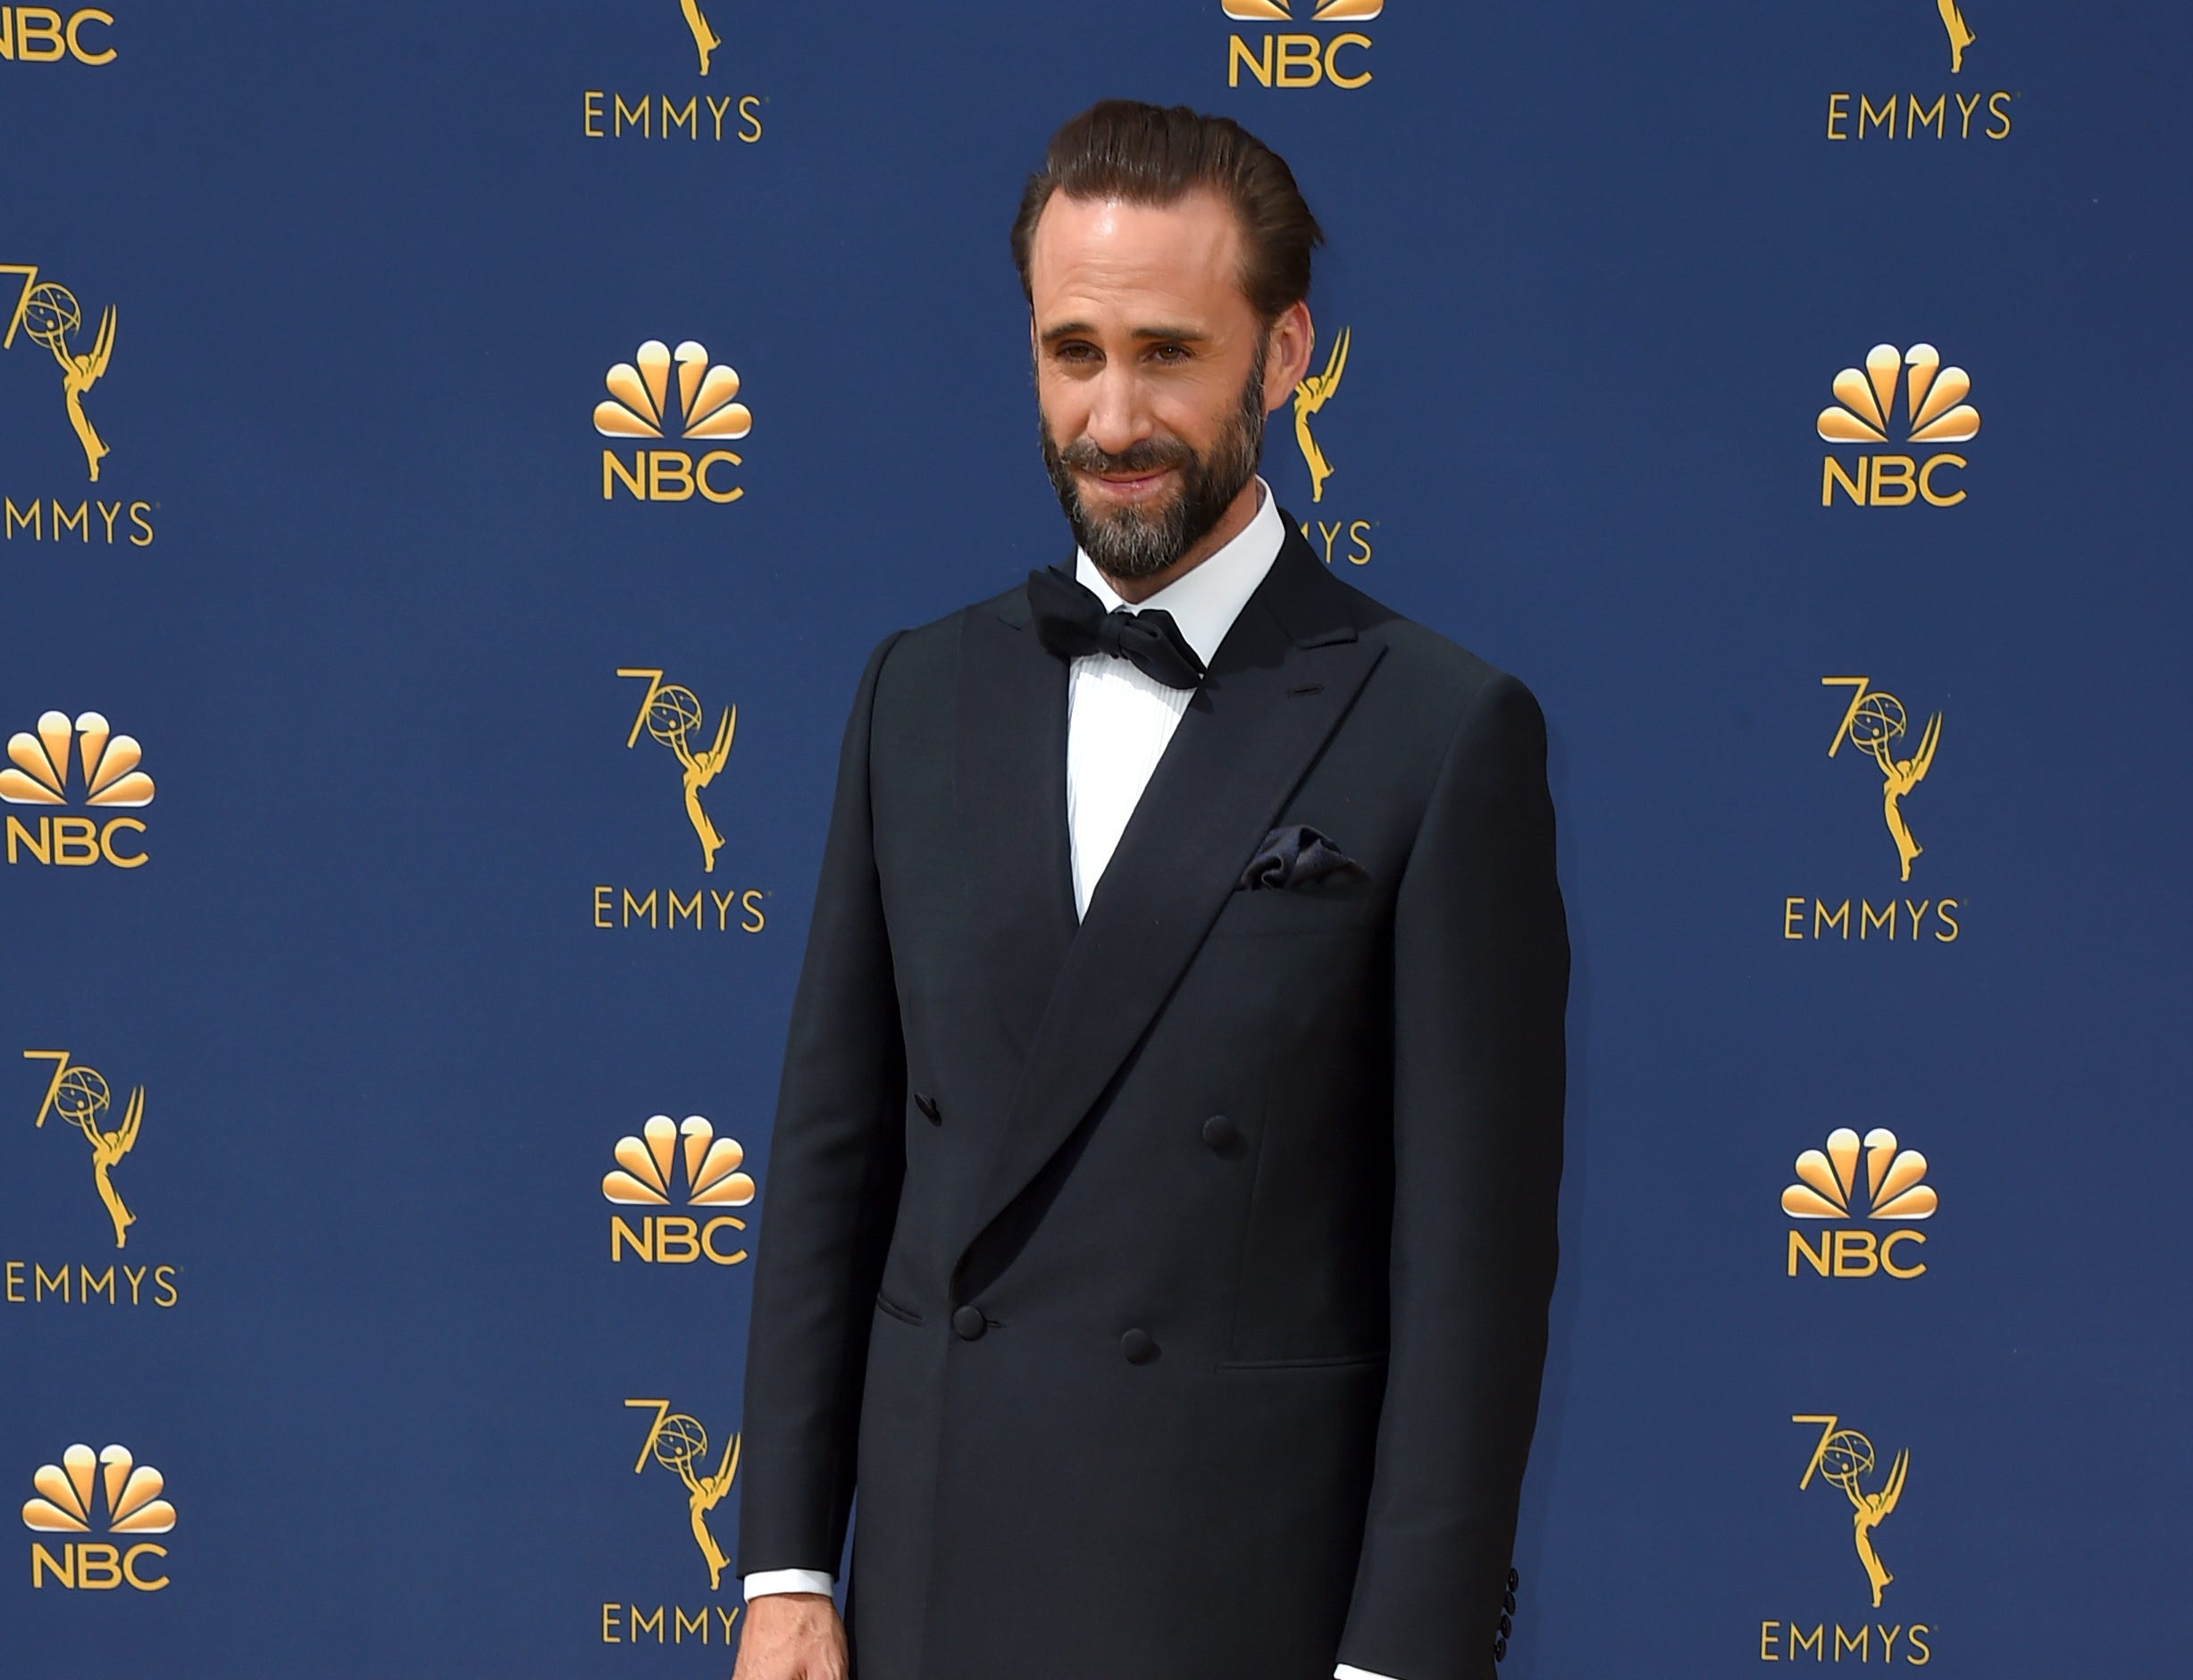 Joseph Fiennes arrives at the 70th Primetime Emmy Awards on Monday, Sept. 17, 2018, at the Microsoft Theater in Los Angeles.